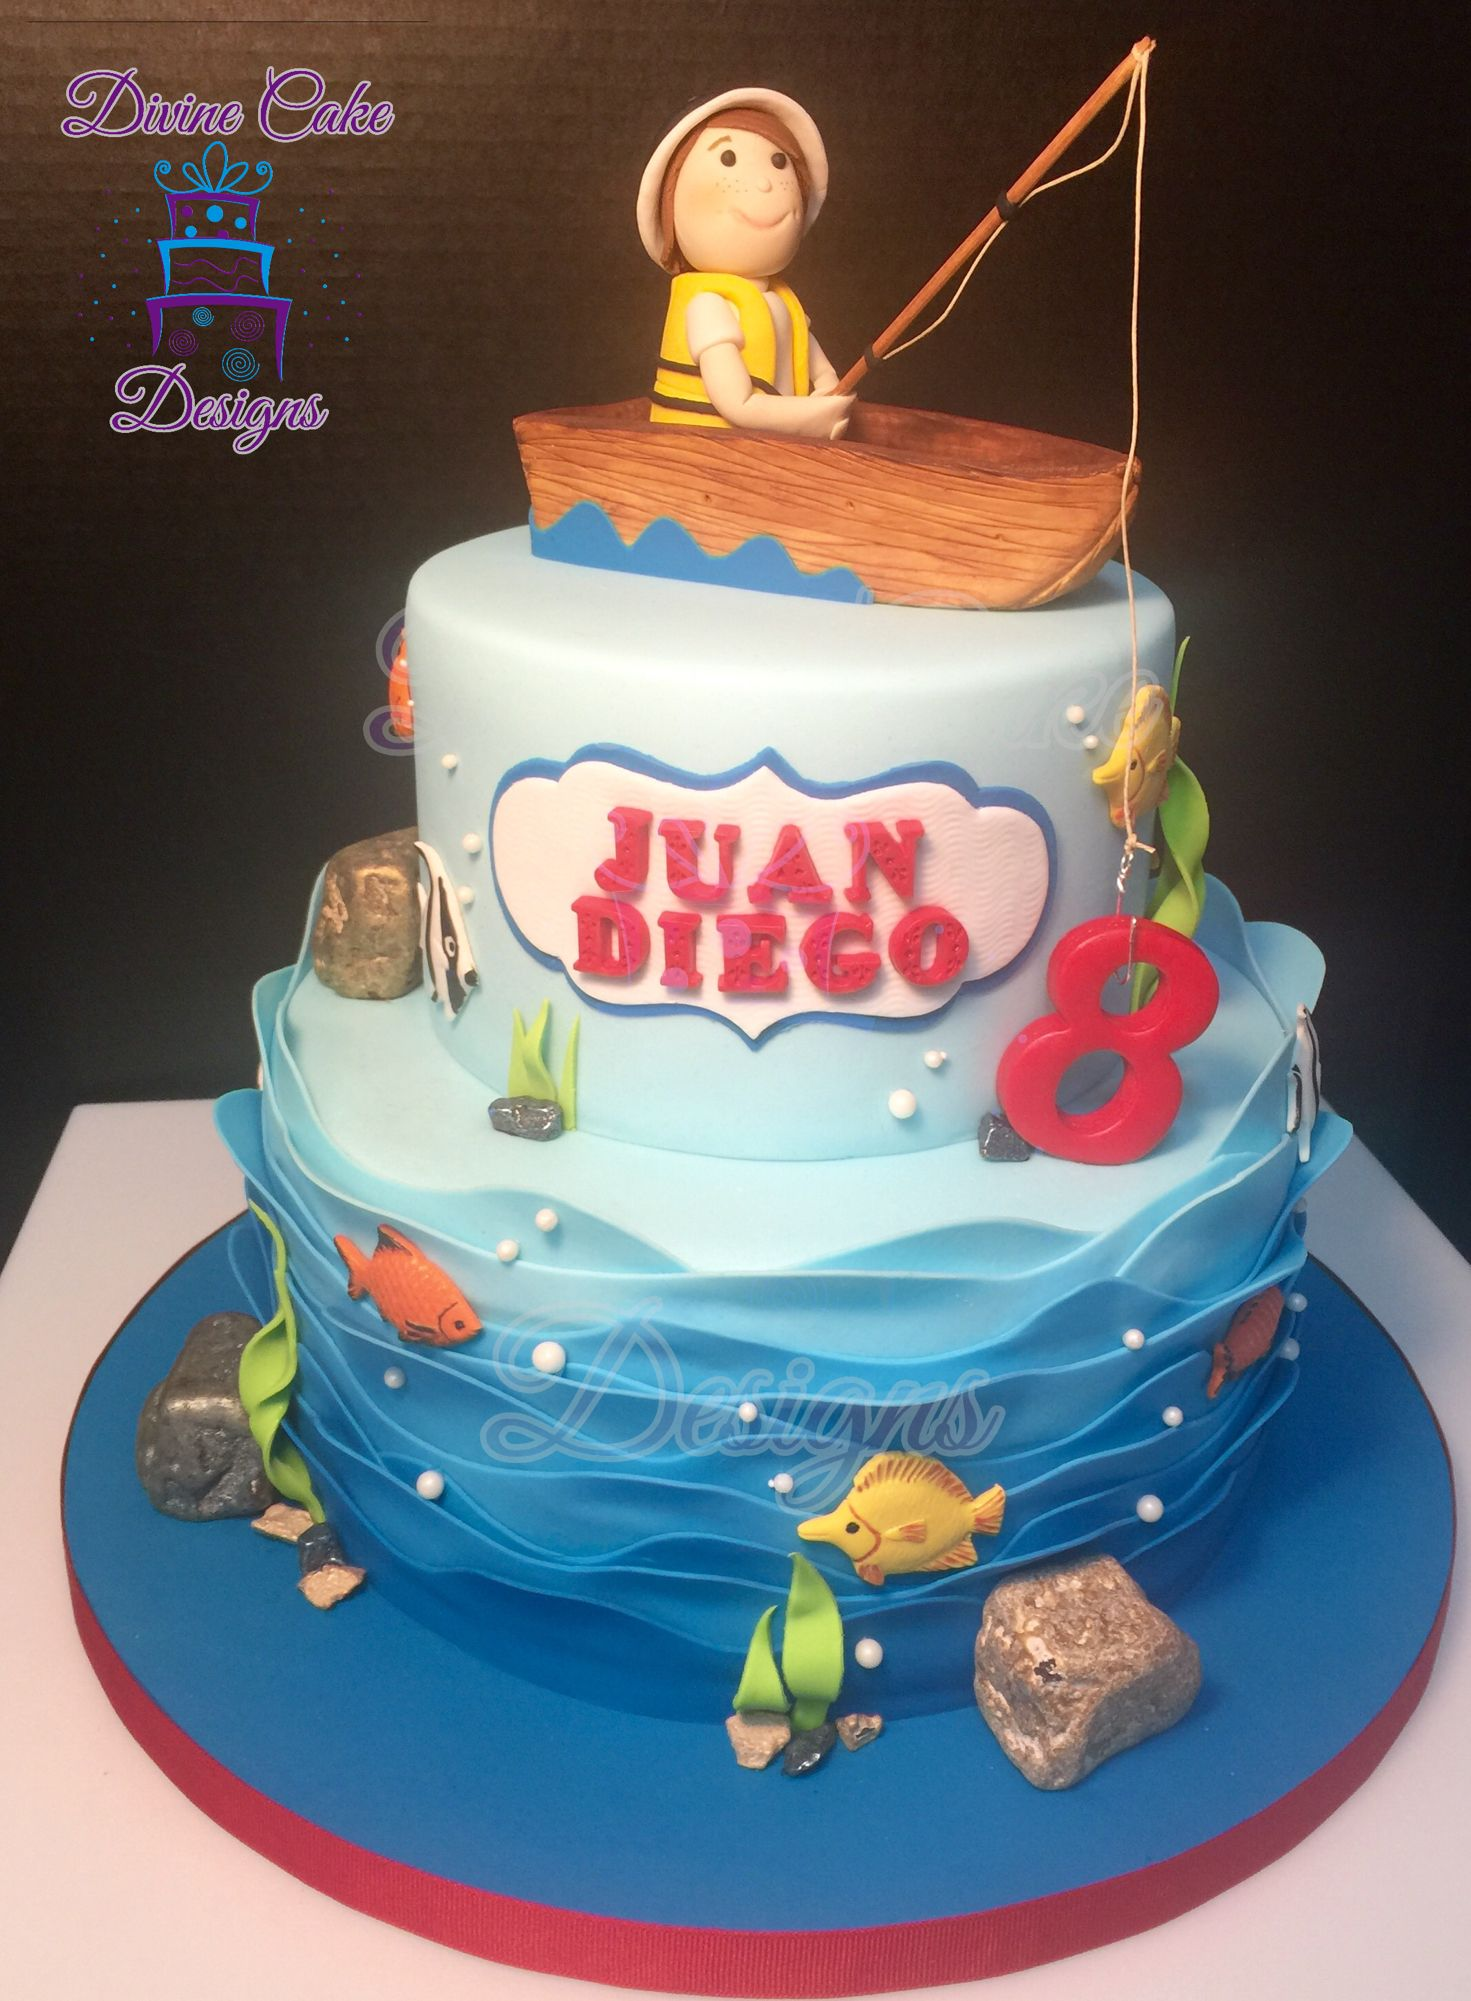 Fishing cake Kids birthday cakes Pinterest Fishing cakes Cake